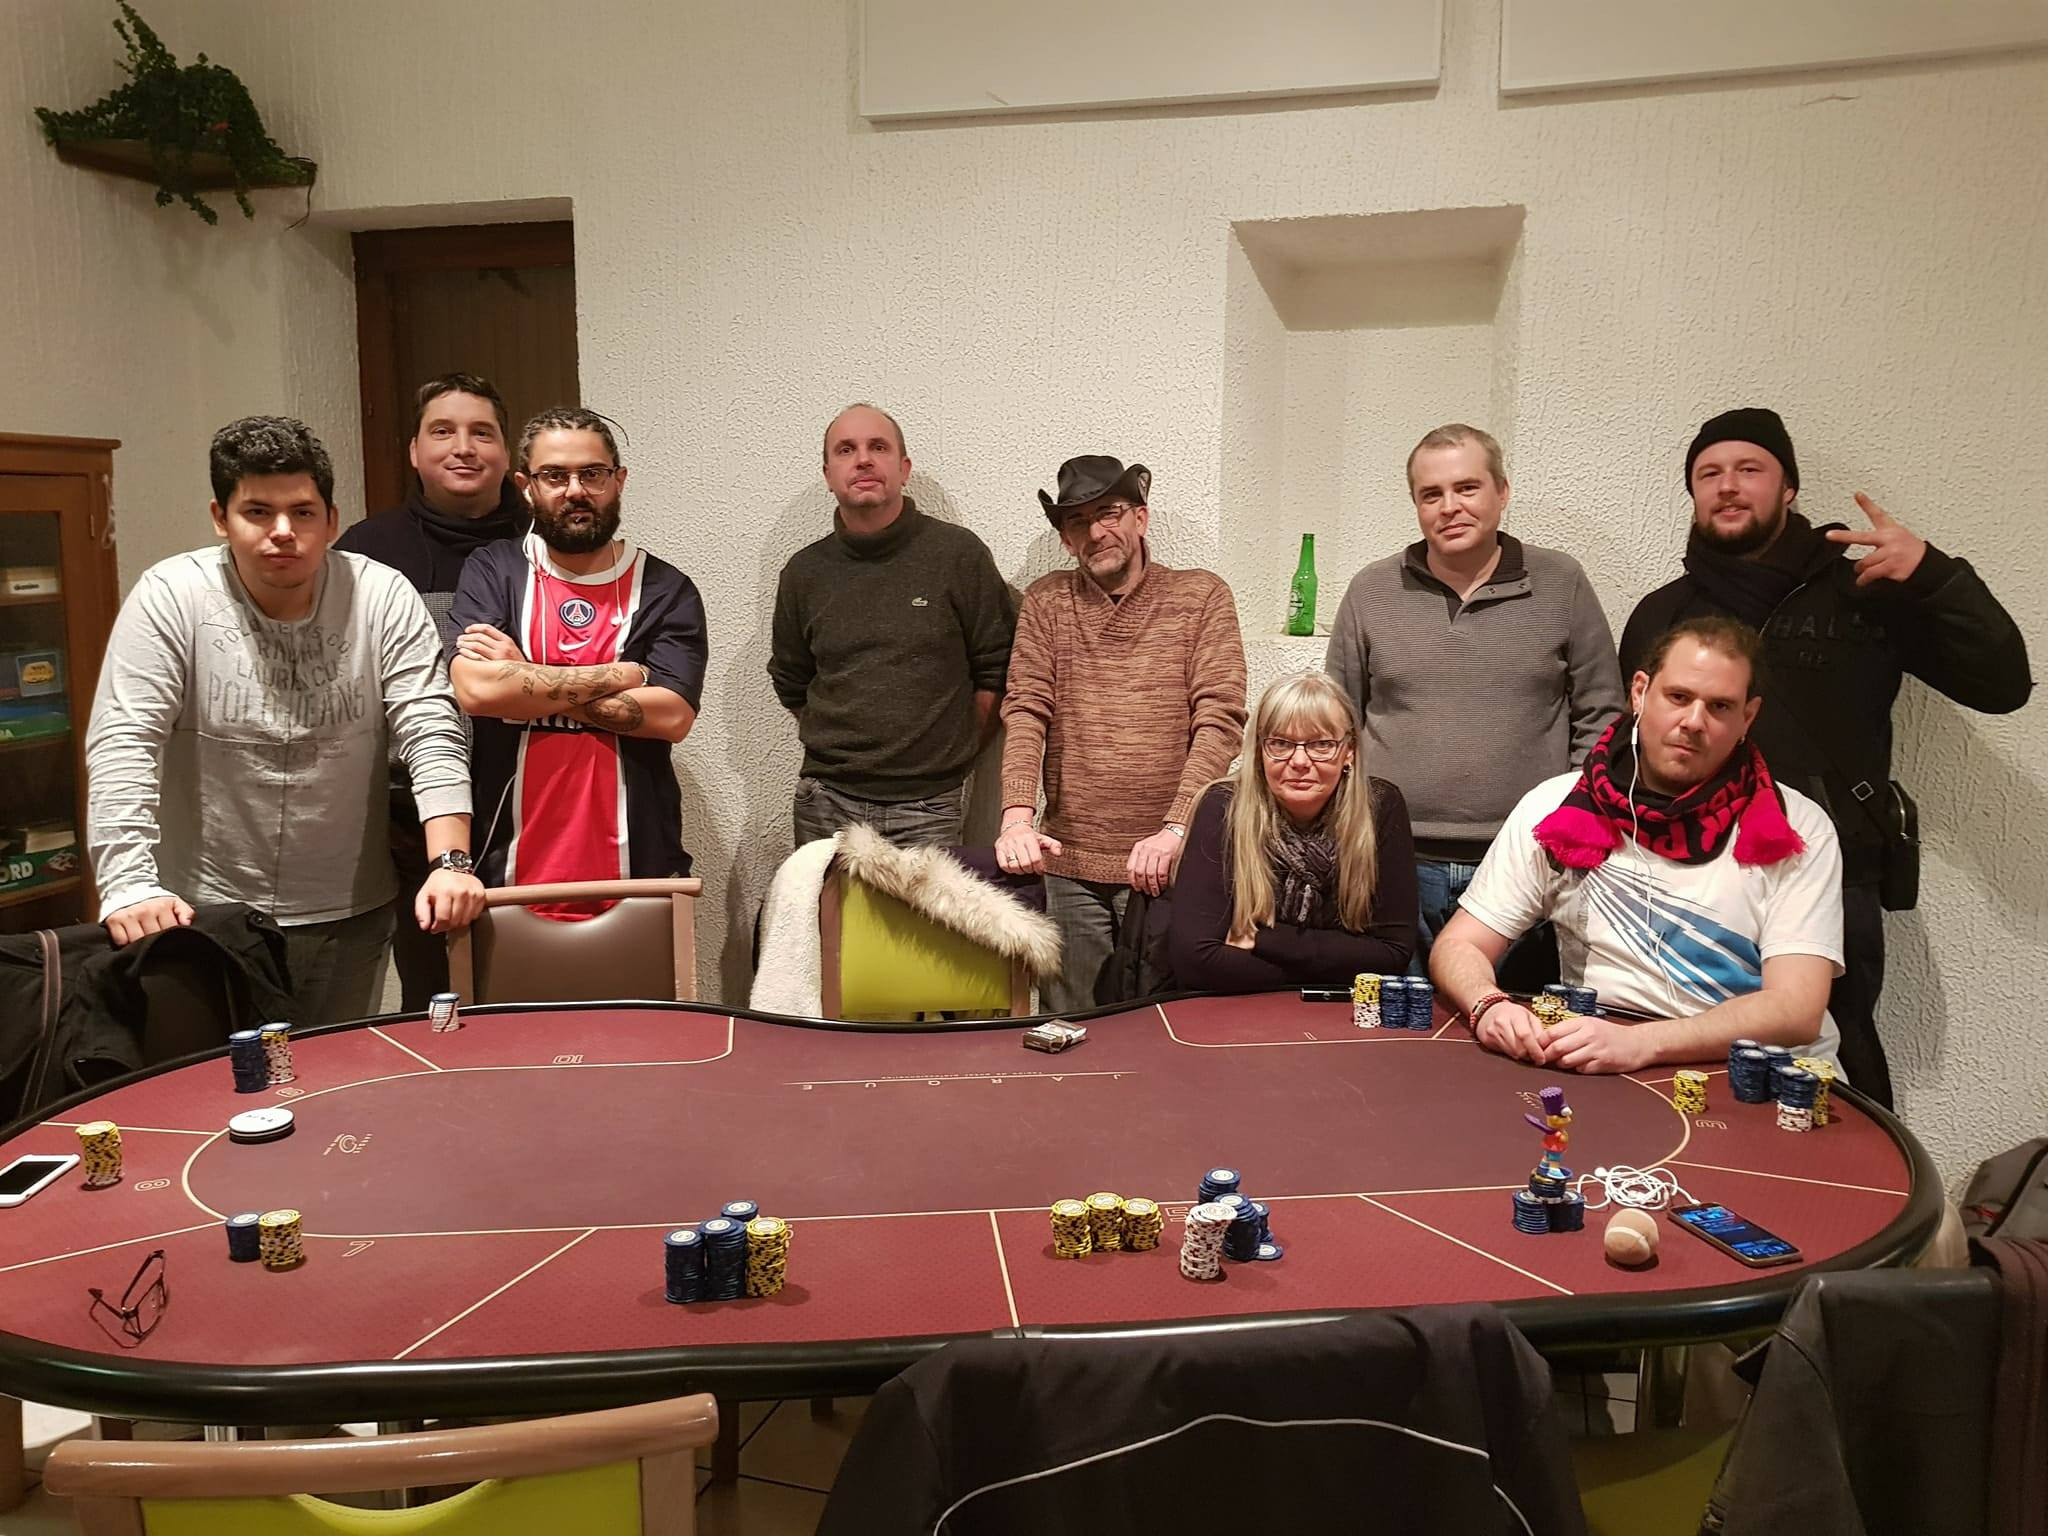 MTT04 10/11/2017 --- Winner CPASLEPEROU --- Runner-Up BROZEUR --- Podium GRINCHEUX